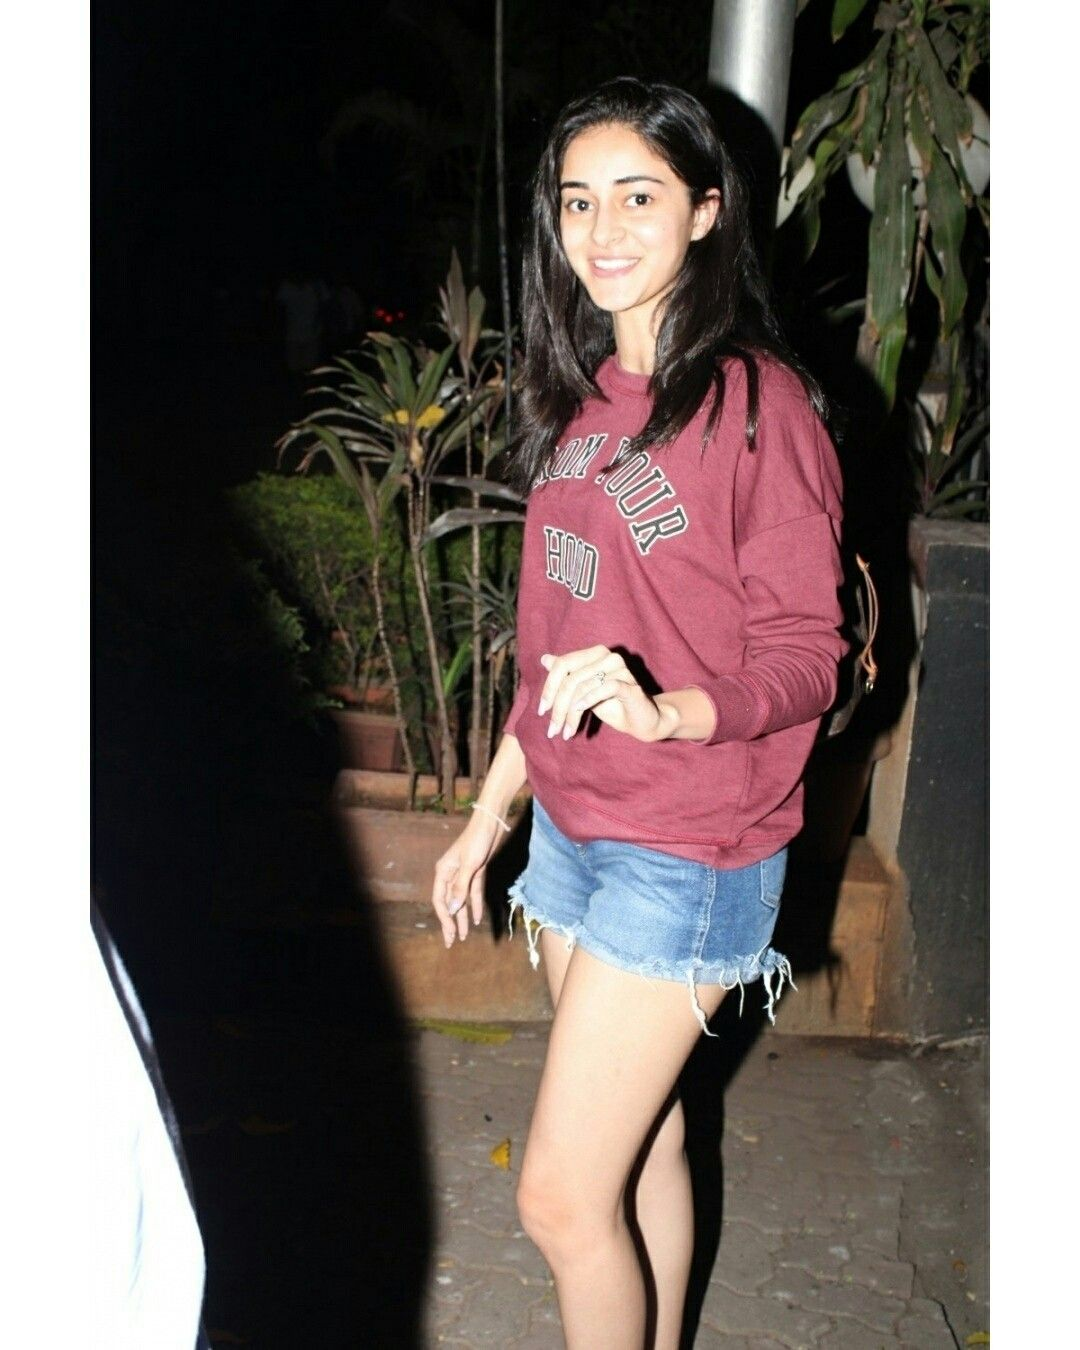 Latest News Updates: Ananya Pandey Latest New Clicks